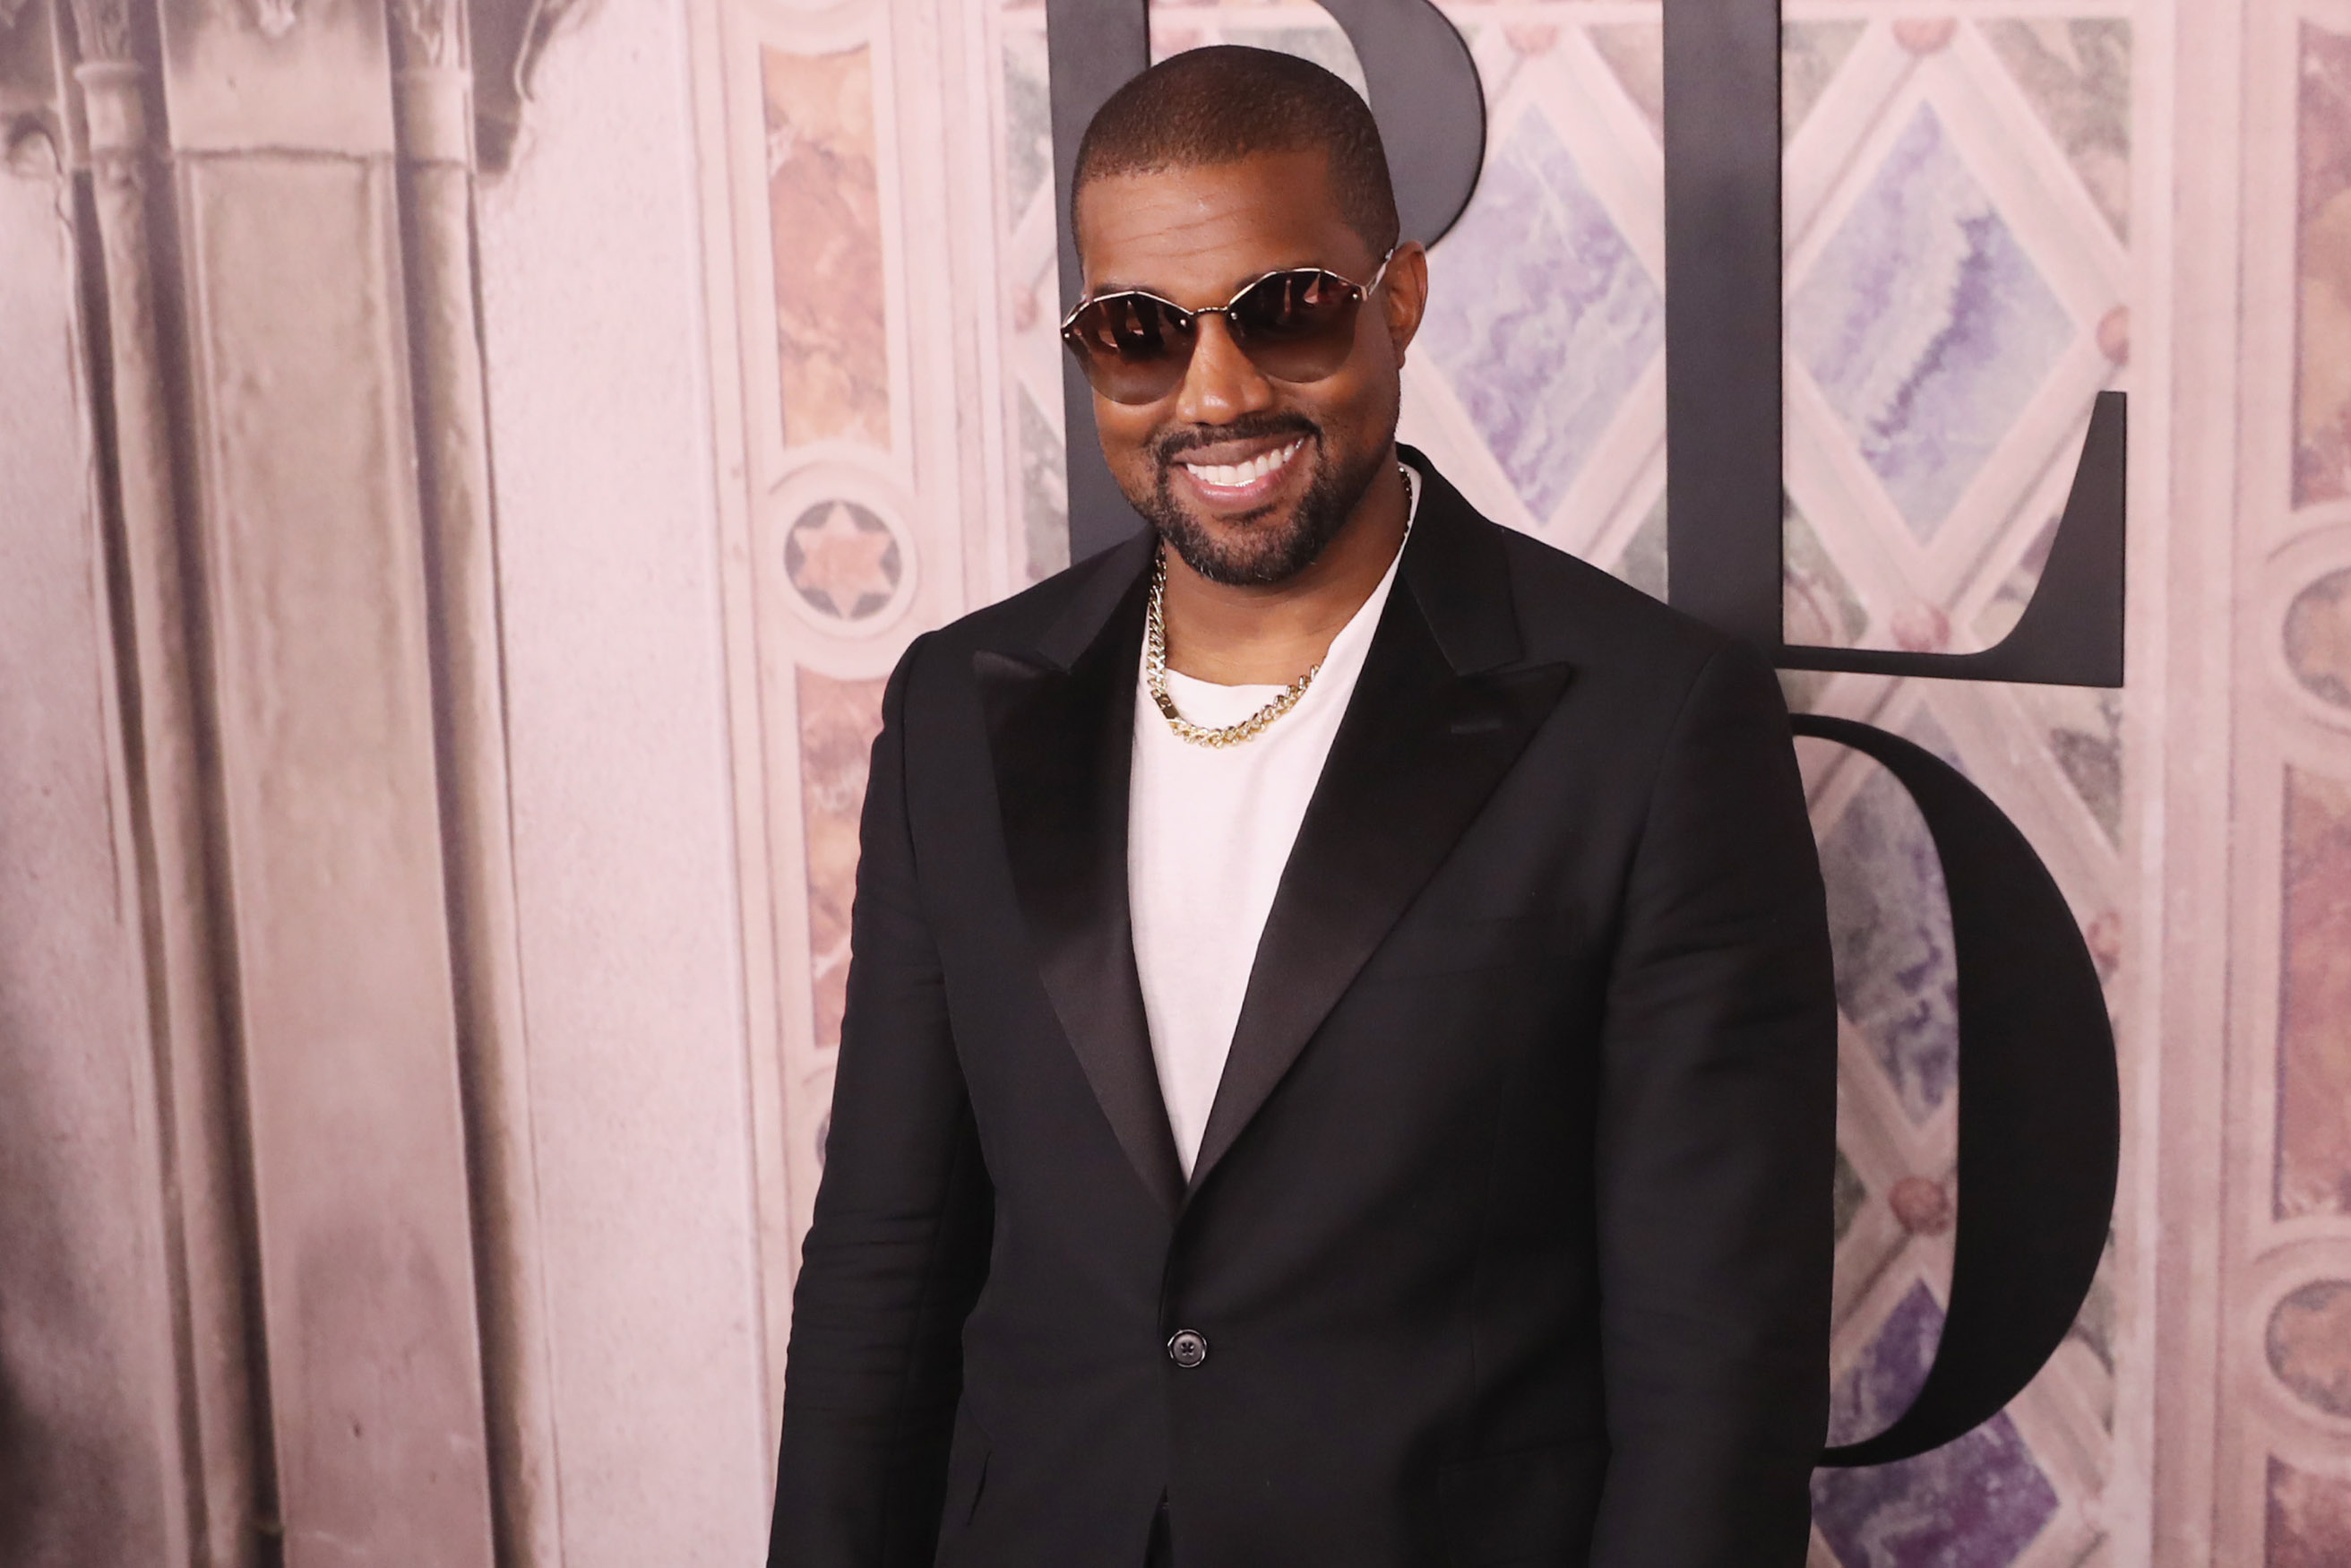 Kanye West Confirms He Has Converted to Christianity Ahead of New Album Release